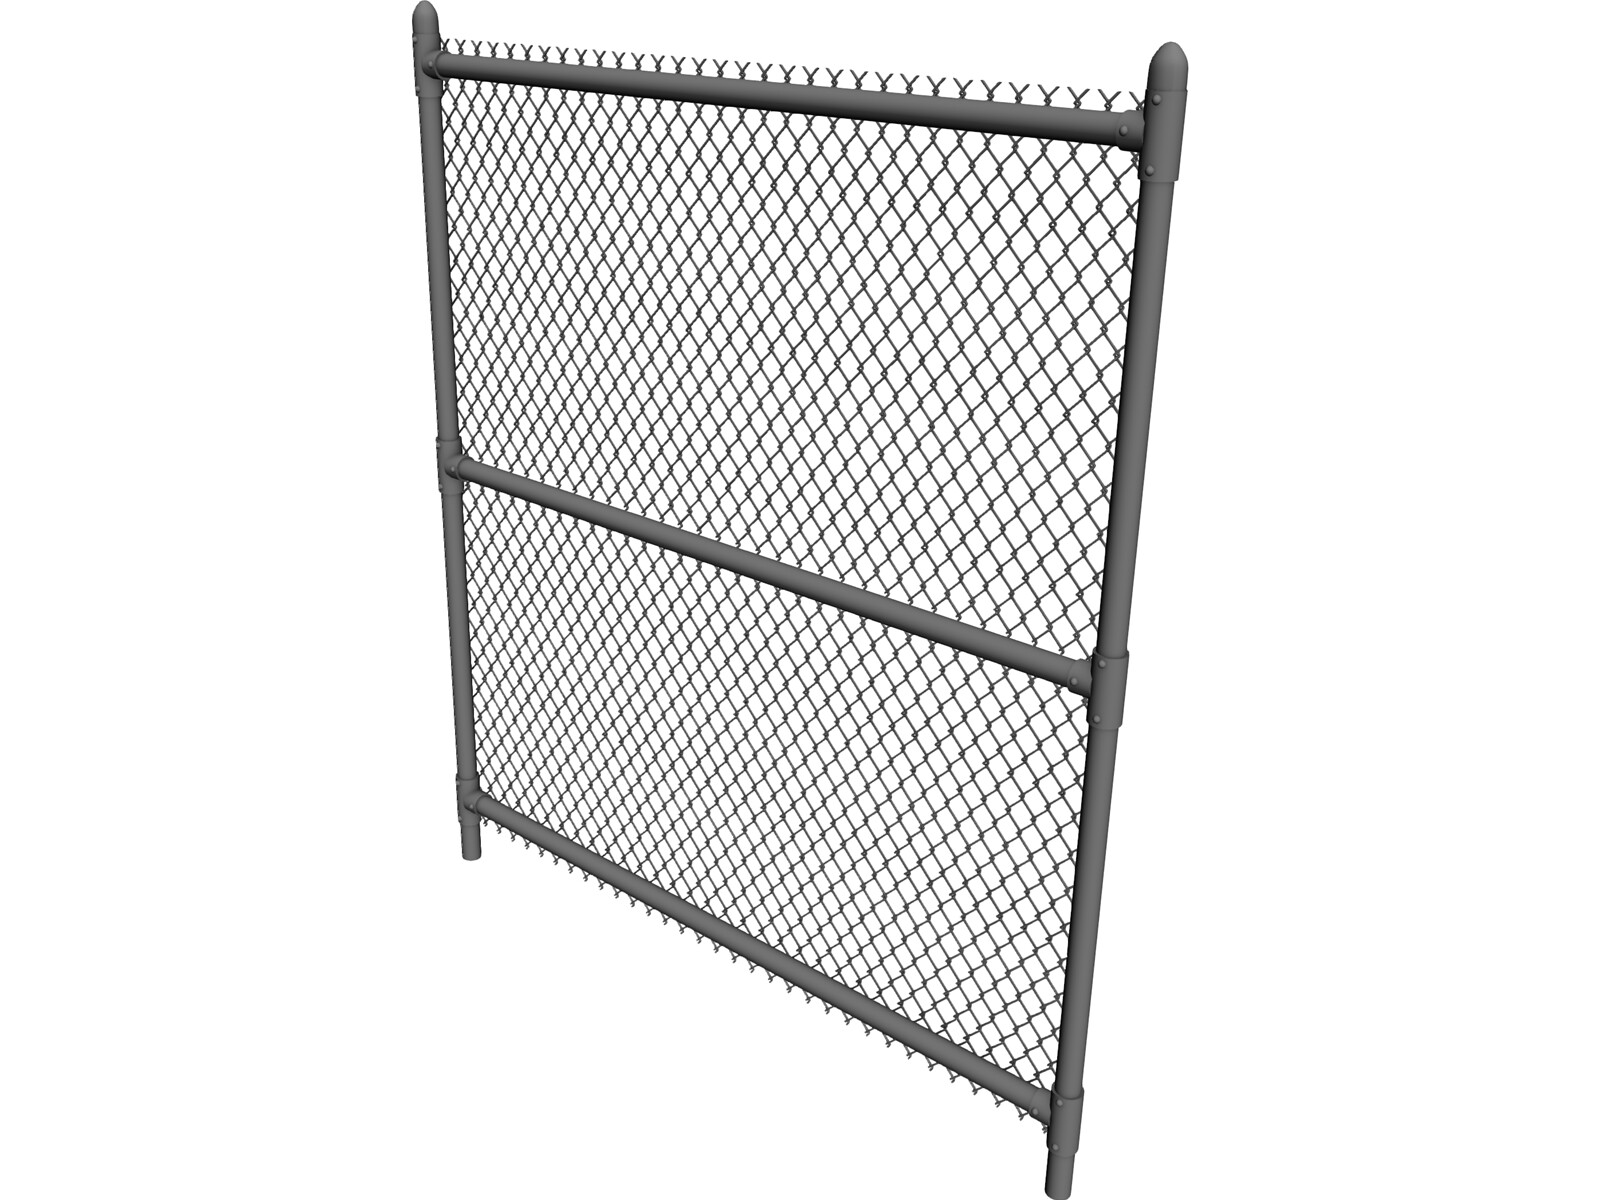 Chain link fence d model cad browser